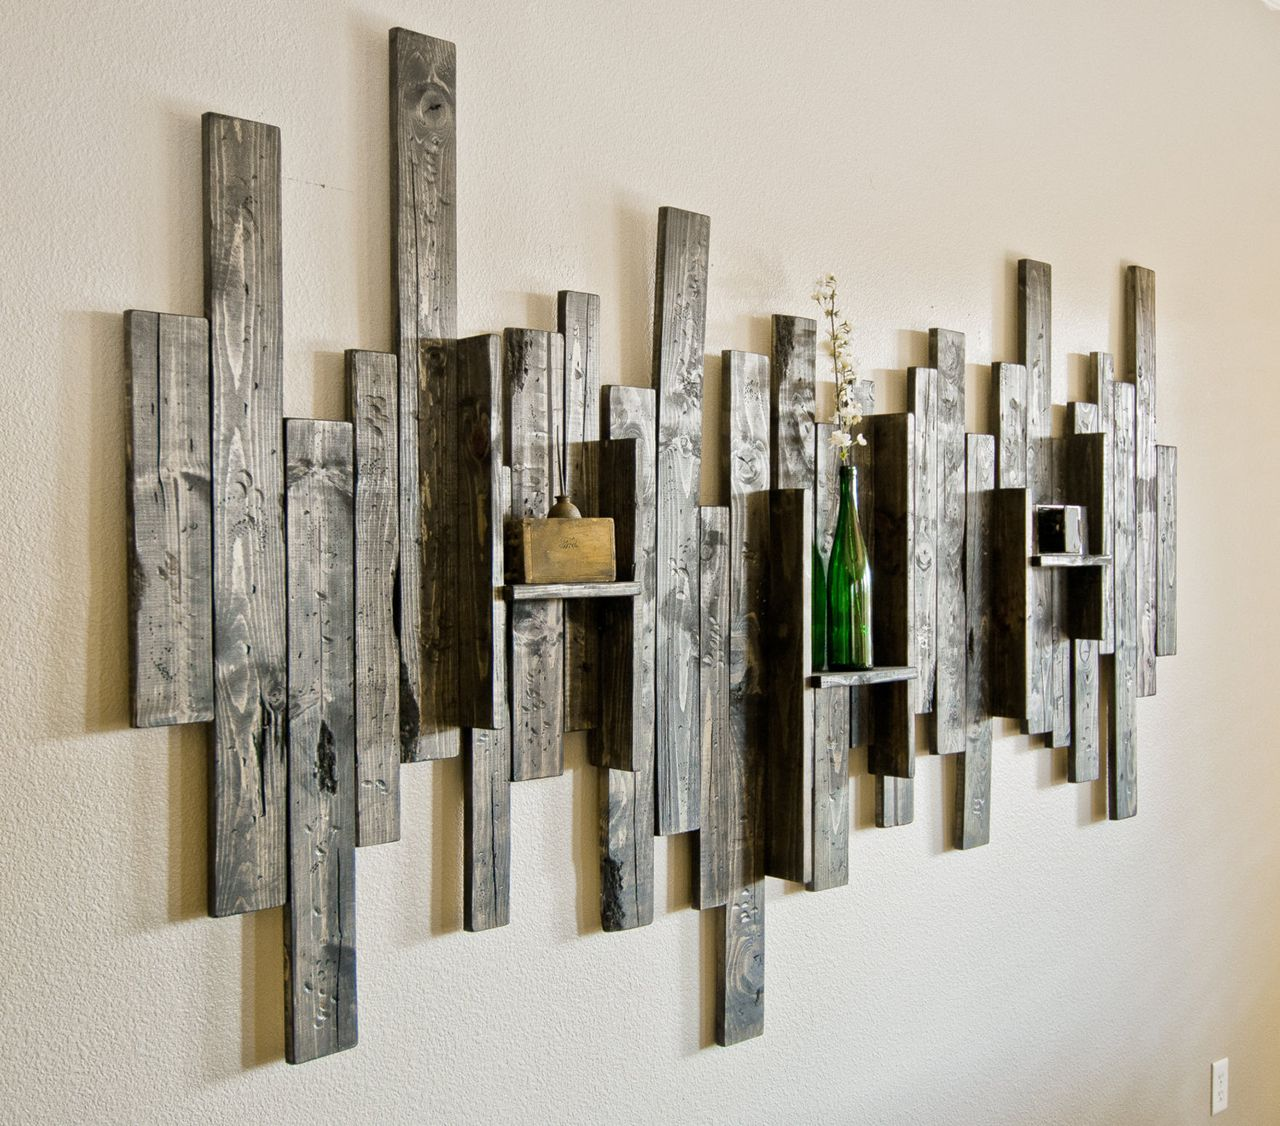 Abstract Wall Decor 27 rustic wall decor ideas to turn shabby into fabulous | abstract